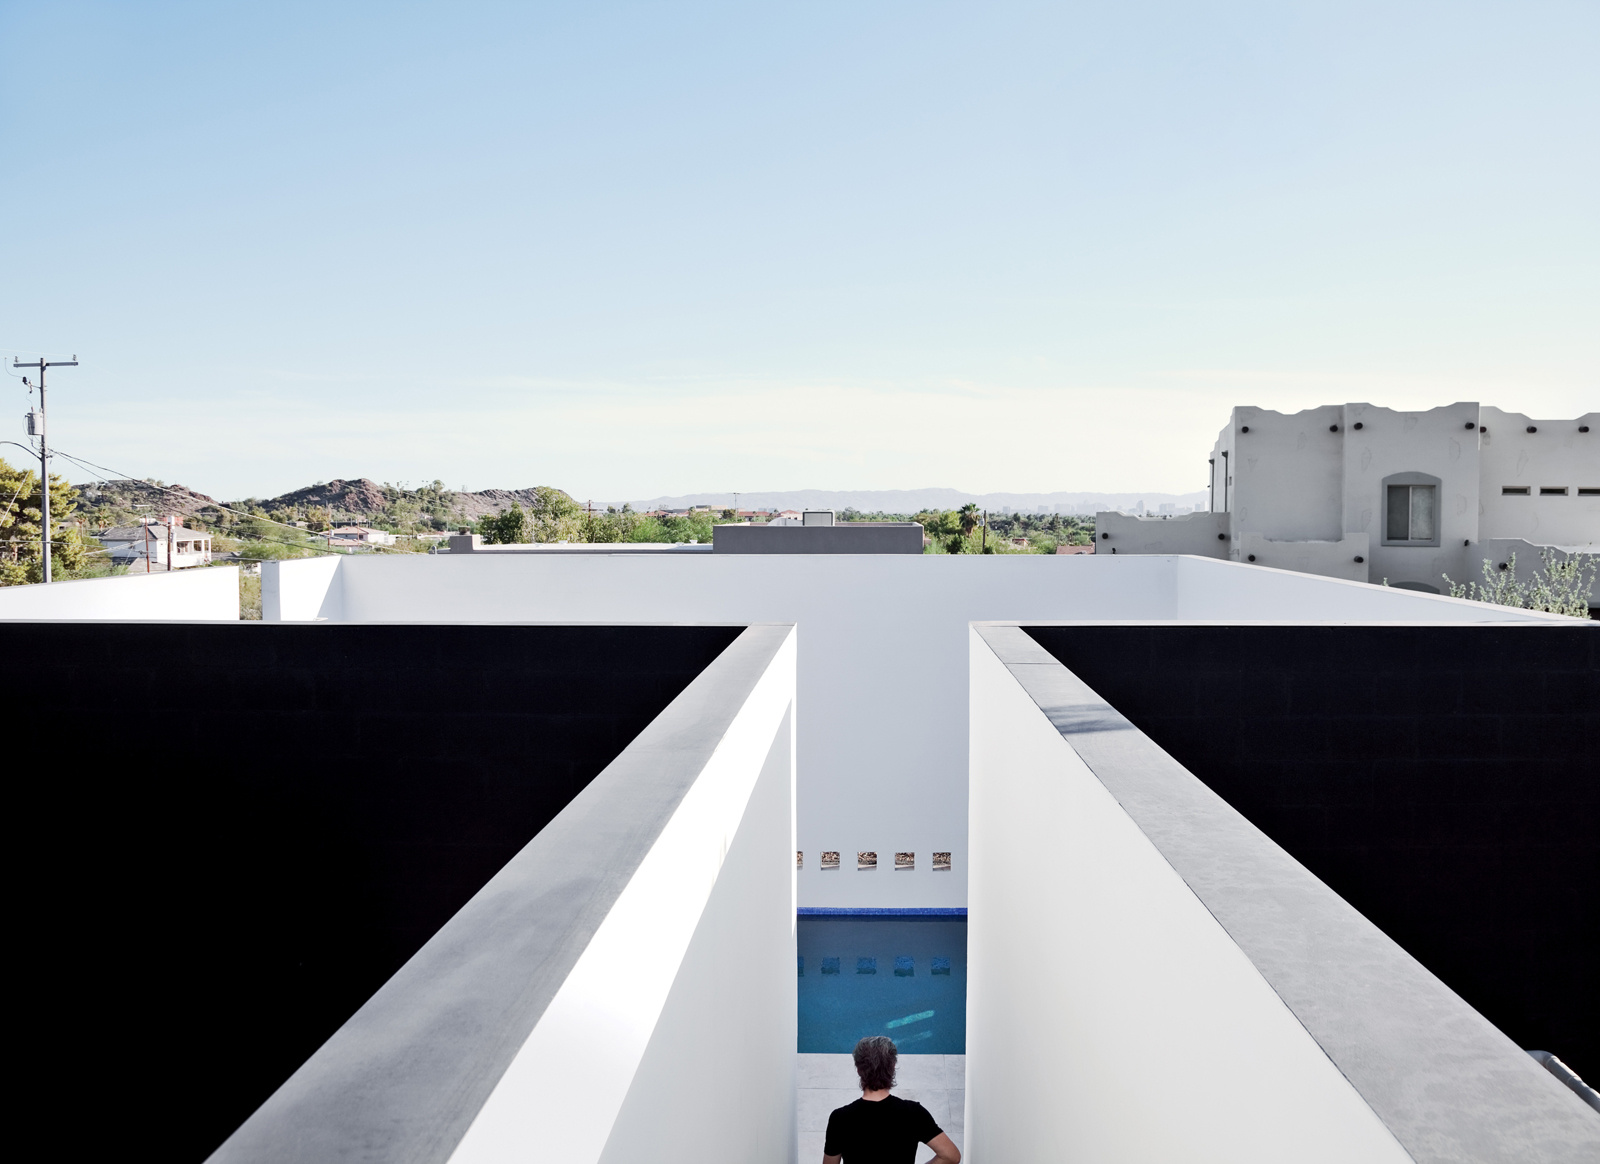 Simplicity love dialogue house phoenix usa wendell burnette architects for Phoenix swimming pool white city